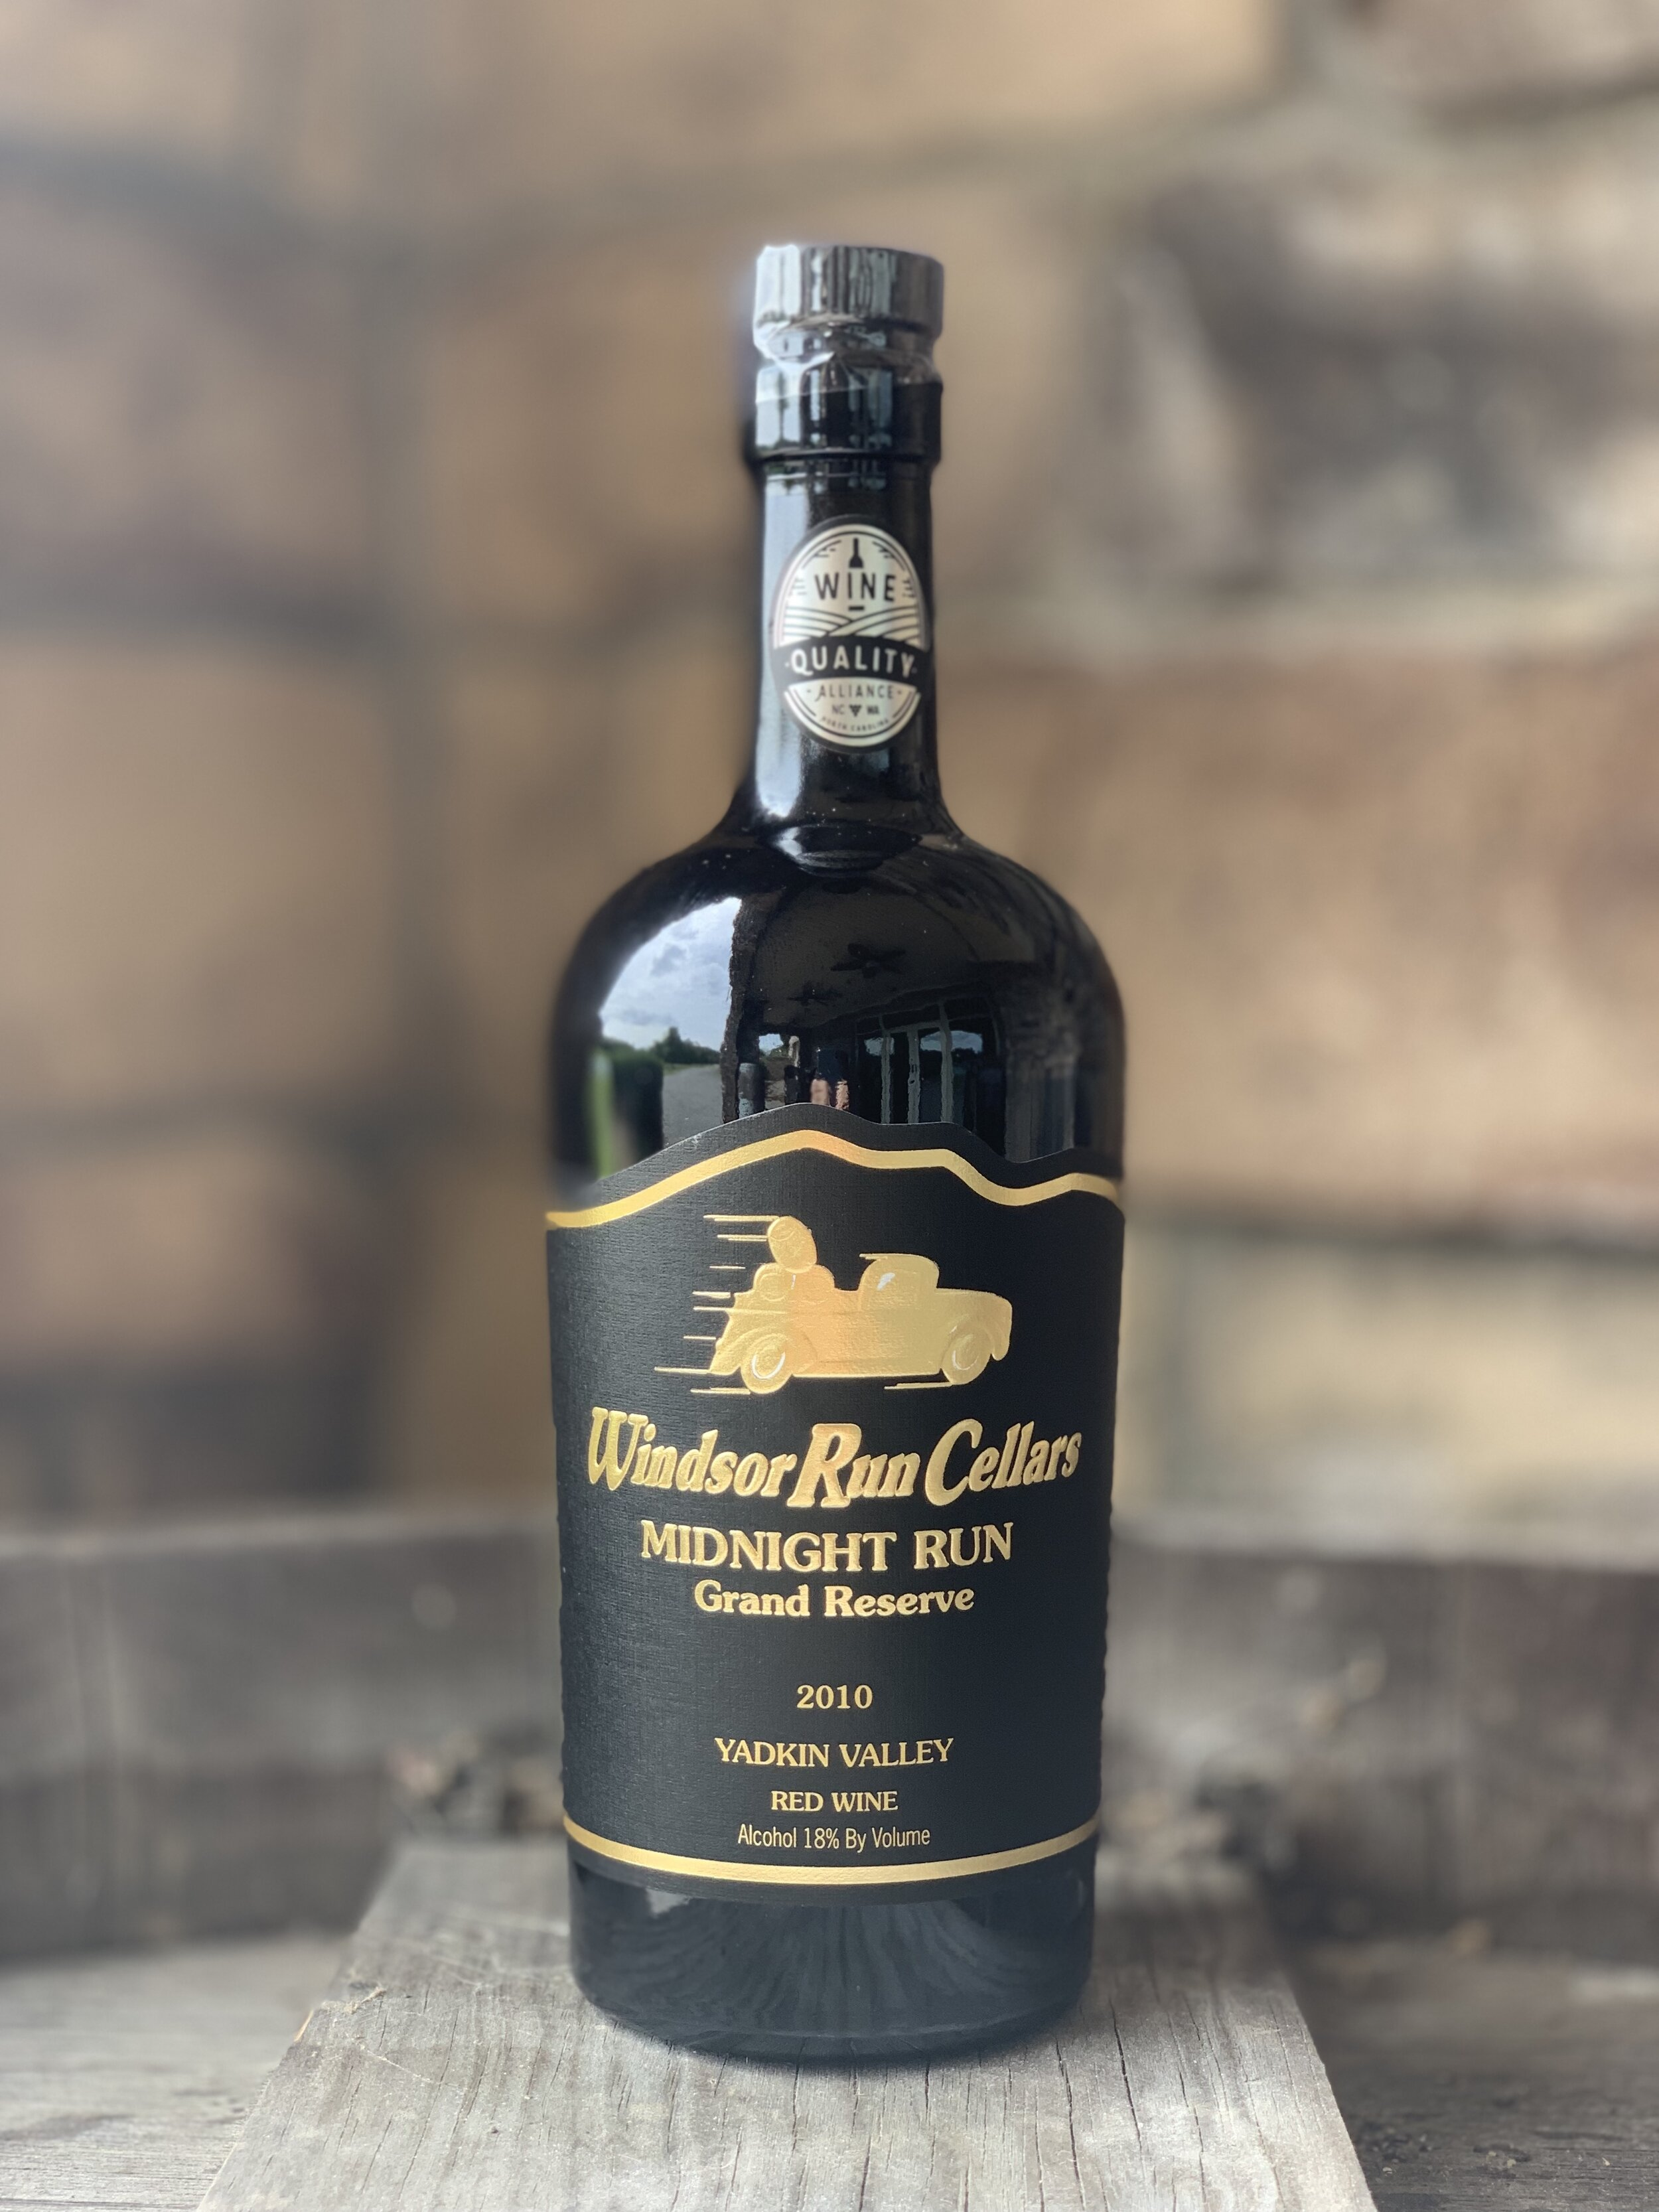 Midnight Run Grand Reserve  Luxurious notes of hot coffee, velvety chocolate and spicy rum cake, with subtle cherry and black current. Aged since 2010. Alcohol 18%  $49